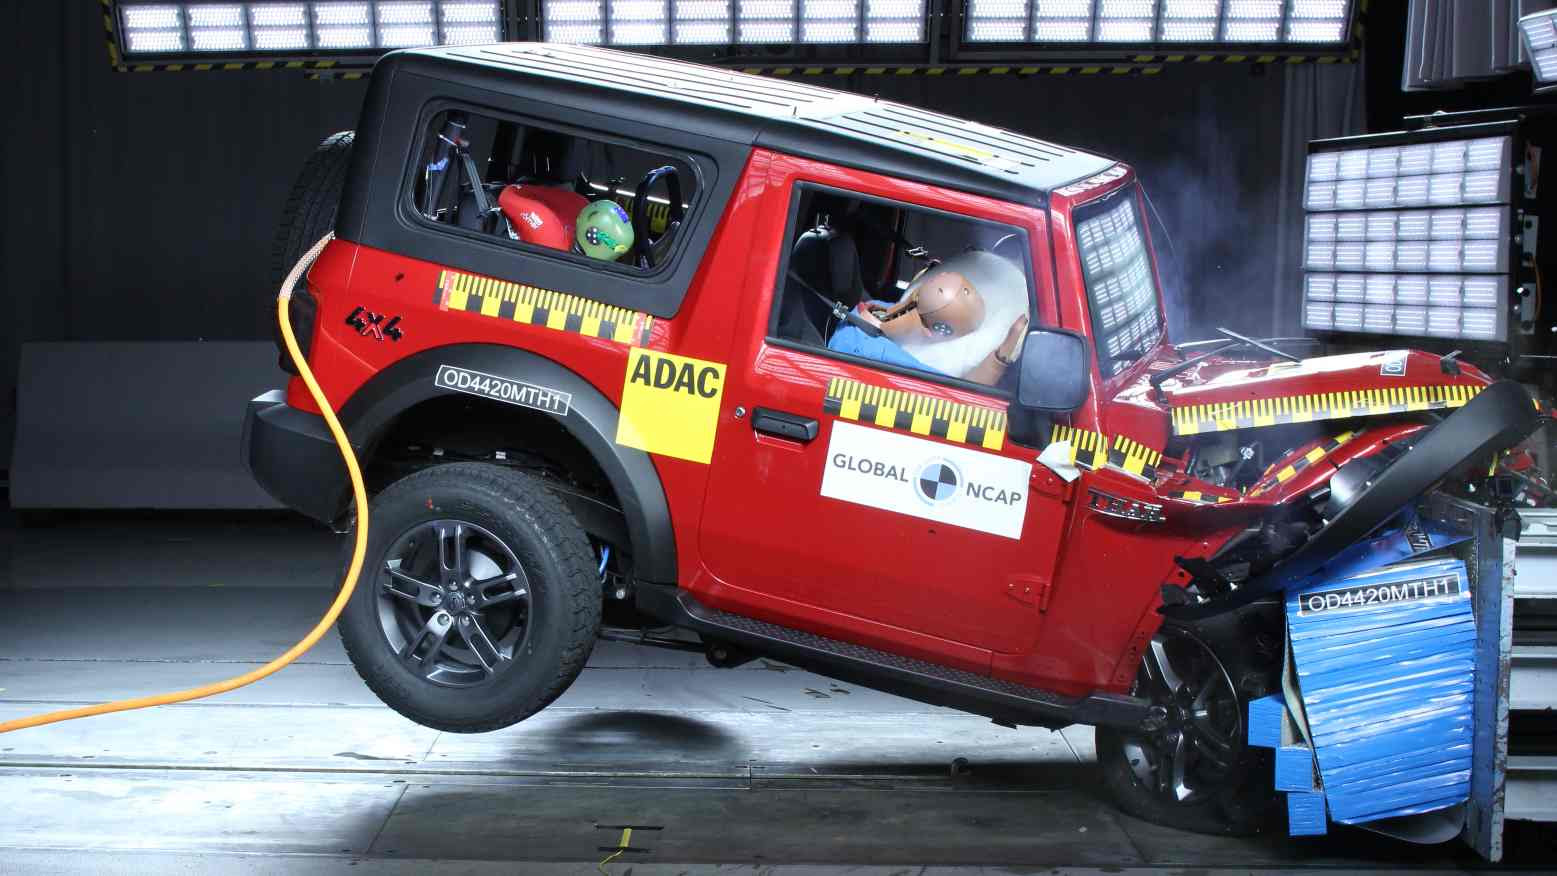 The second-gen Mahindra Thar currently holds the highest score for child occupant protection of all models tested by Global NCAP so far. Image: Global NCAP